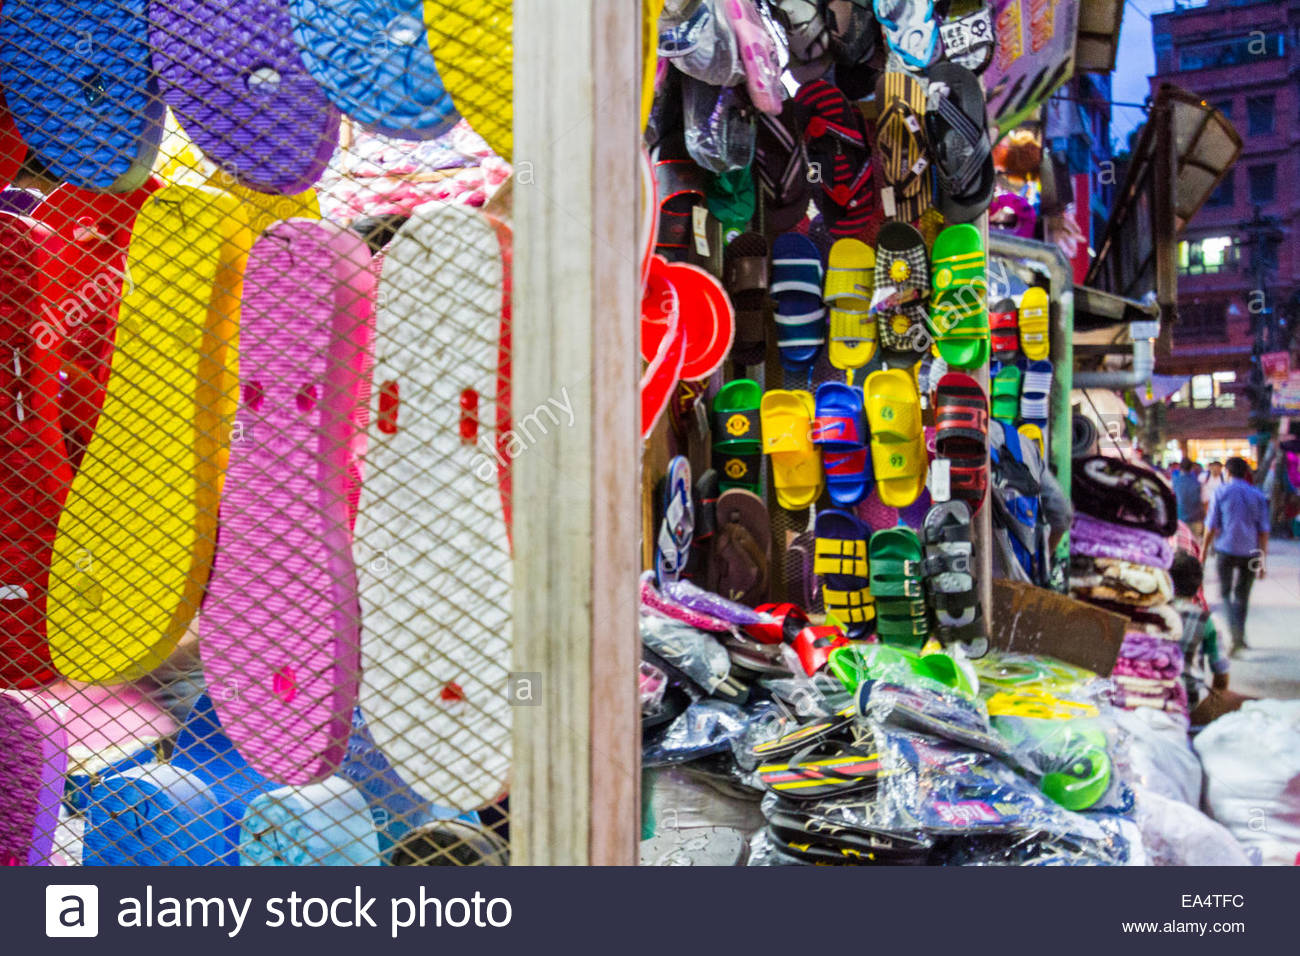 Footwear shop - Nepal - Stock Image